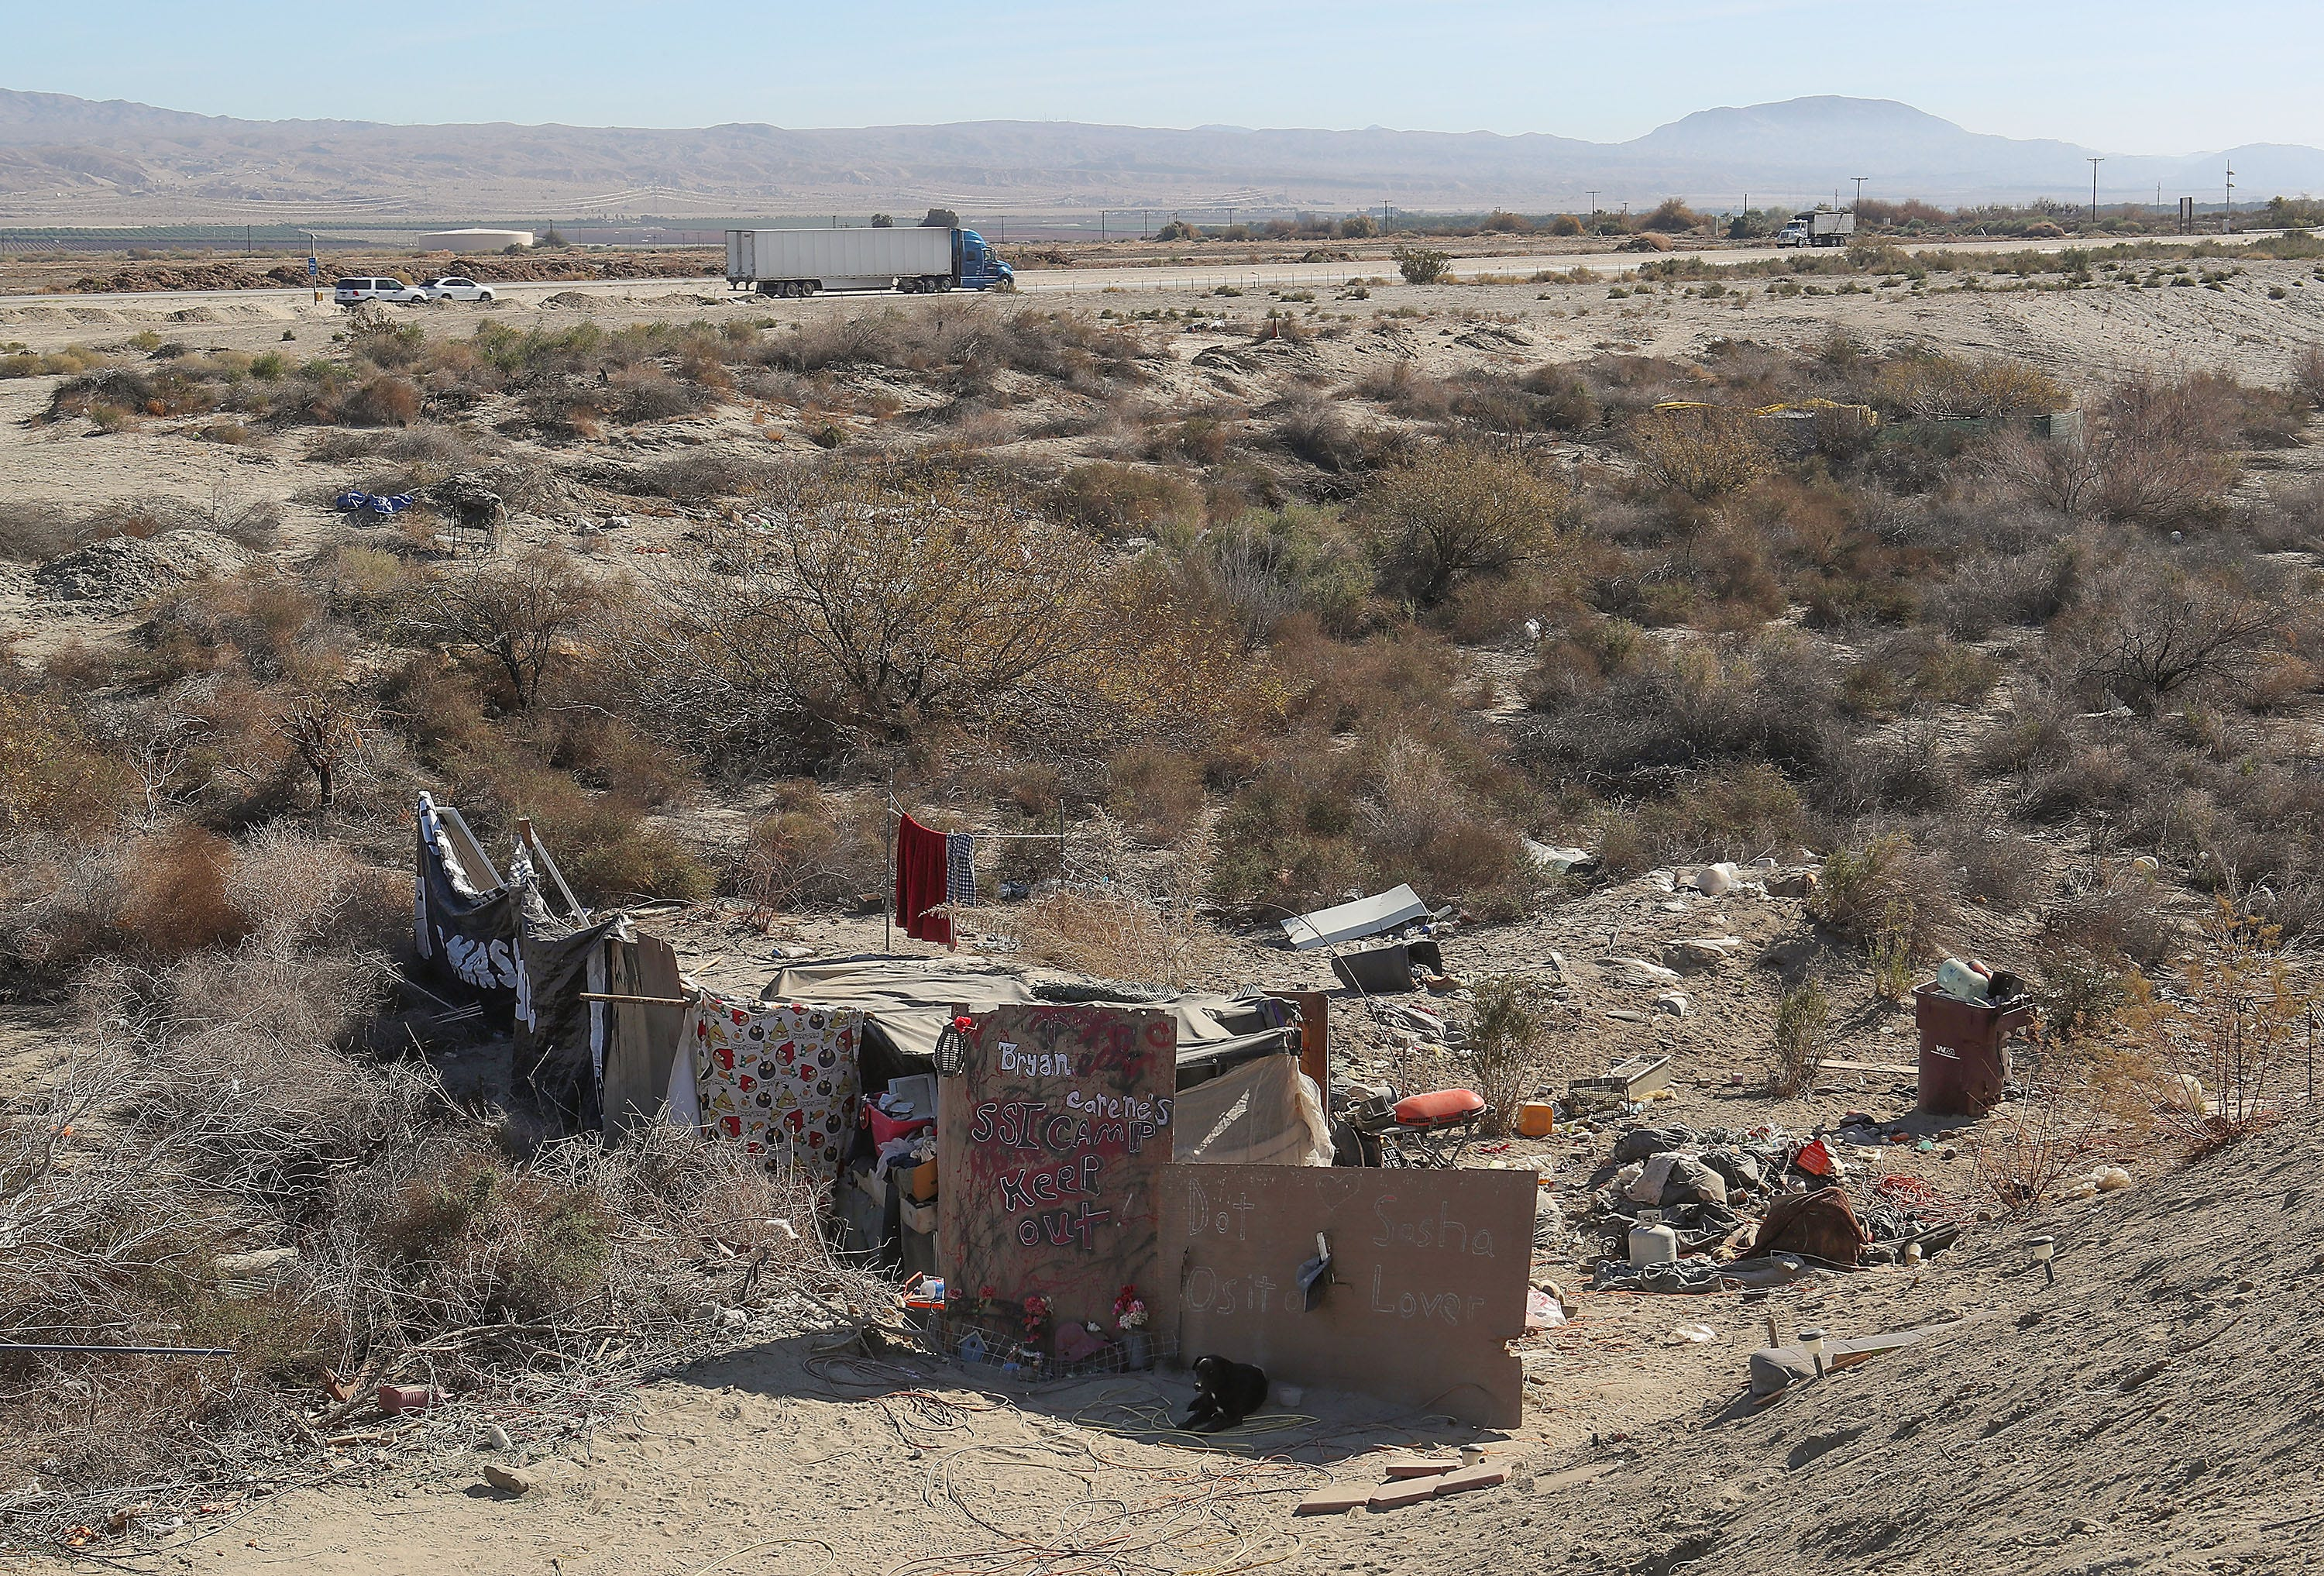 Bryan Hensley and Carene Riale lived at the Coachella encampment on Caltrans land near Dillon Road before it was razed in May 2018.